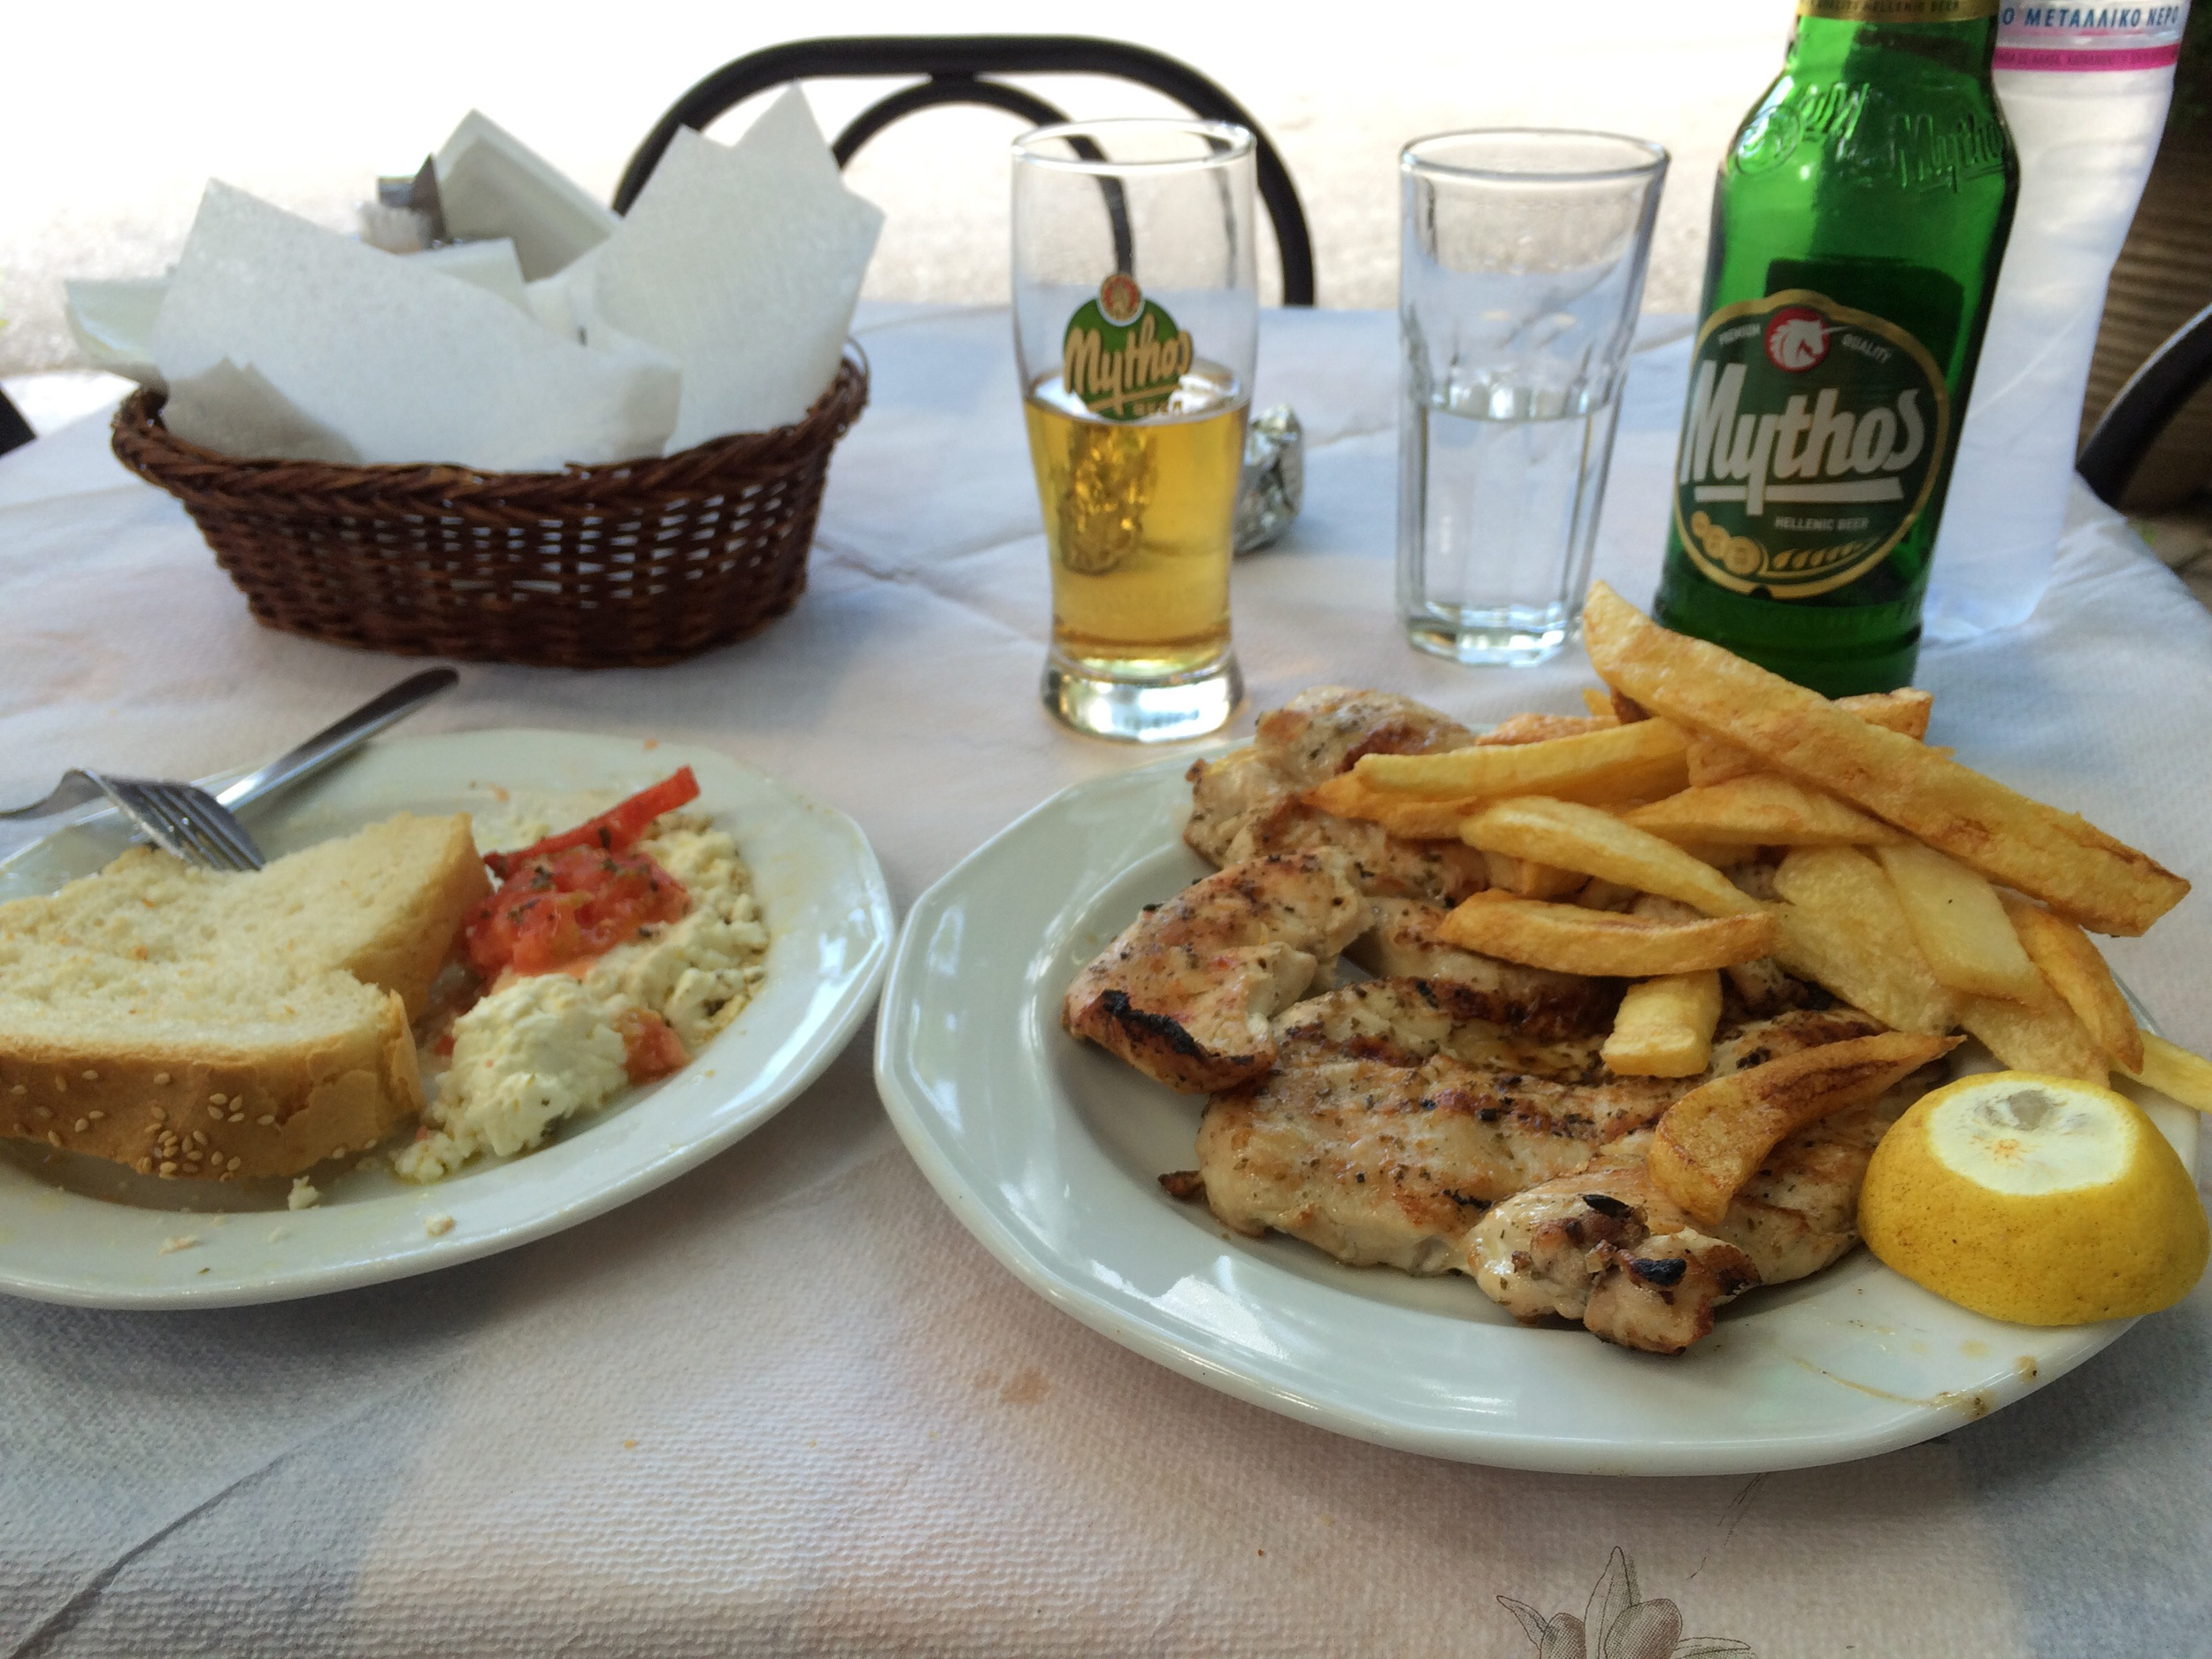 Grilled feta, grilled chicken and Mythos, my fav.